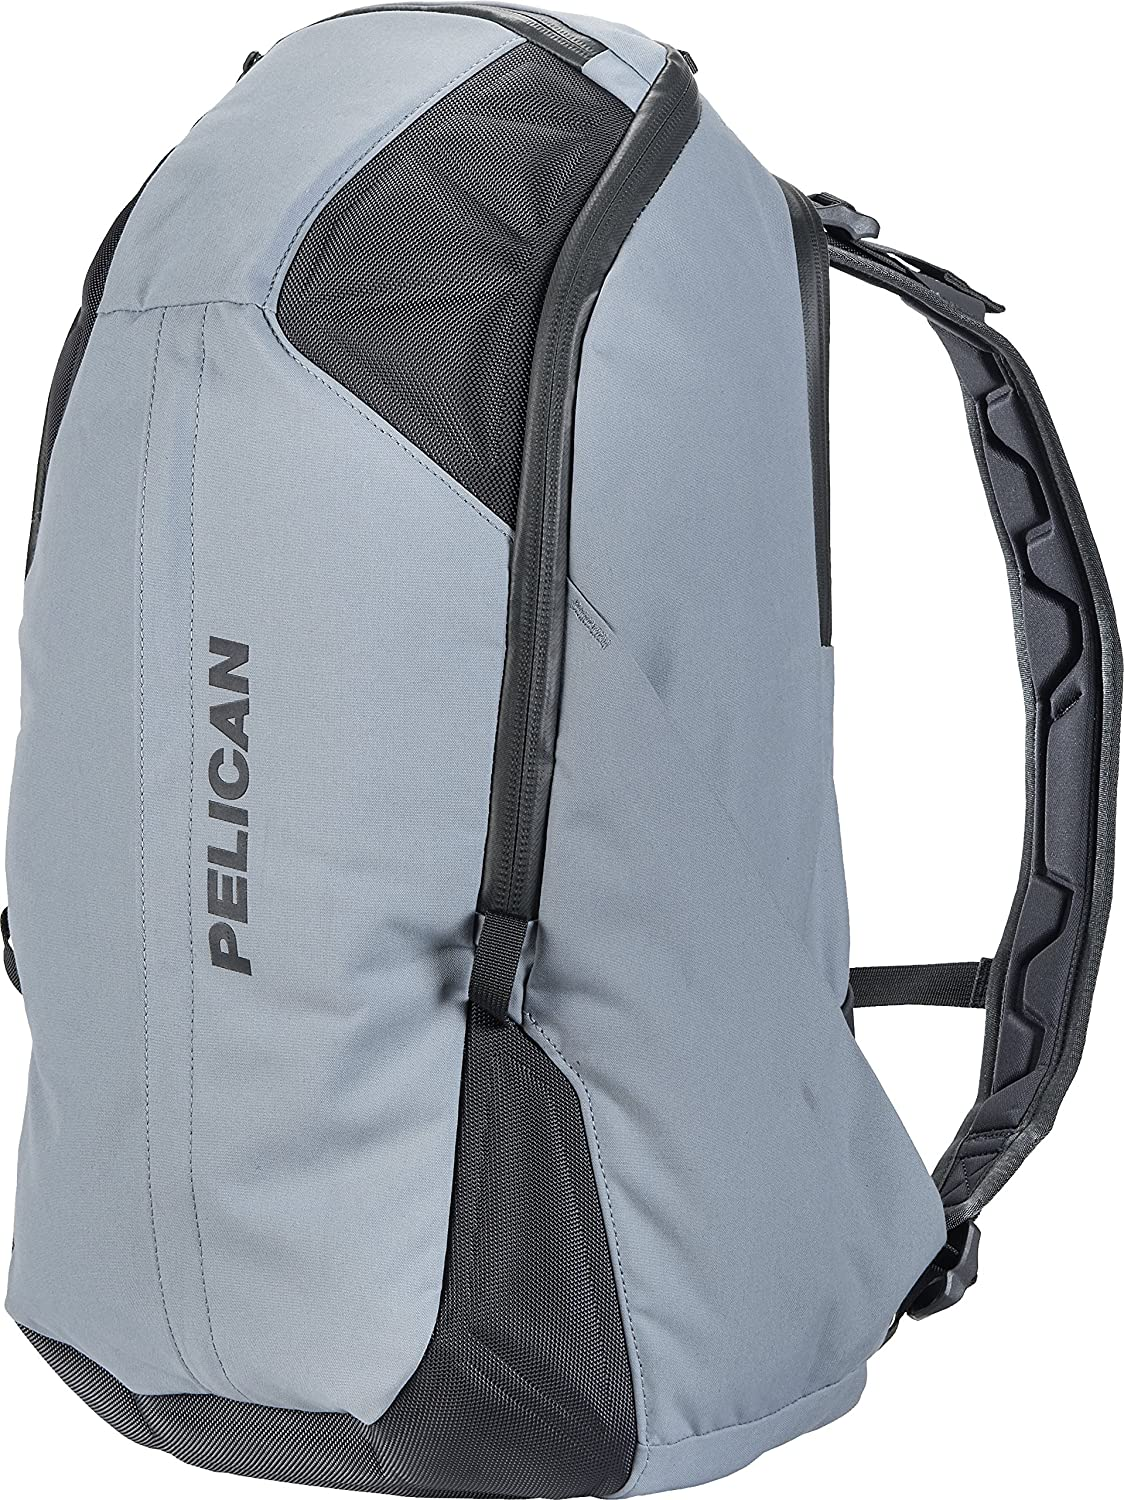 Weatherproof Backpack | Pelican Mobile Protect Backpack - MPB35 (35 Liter)